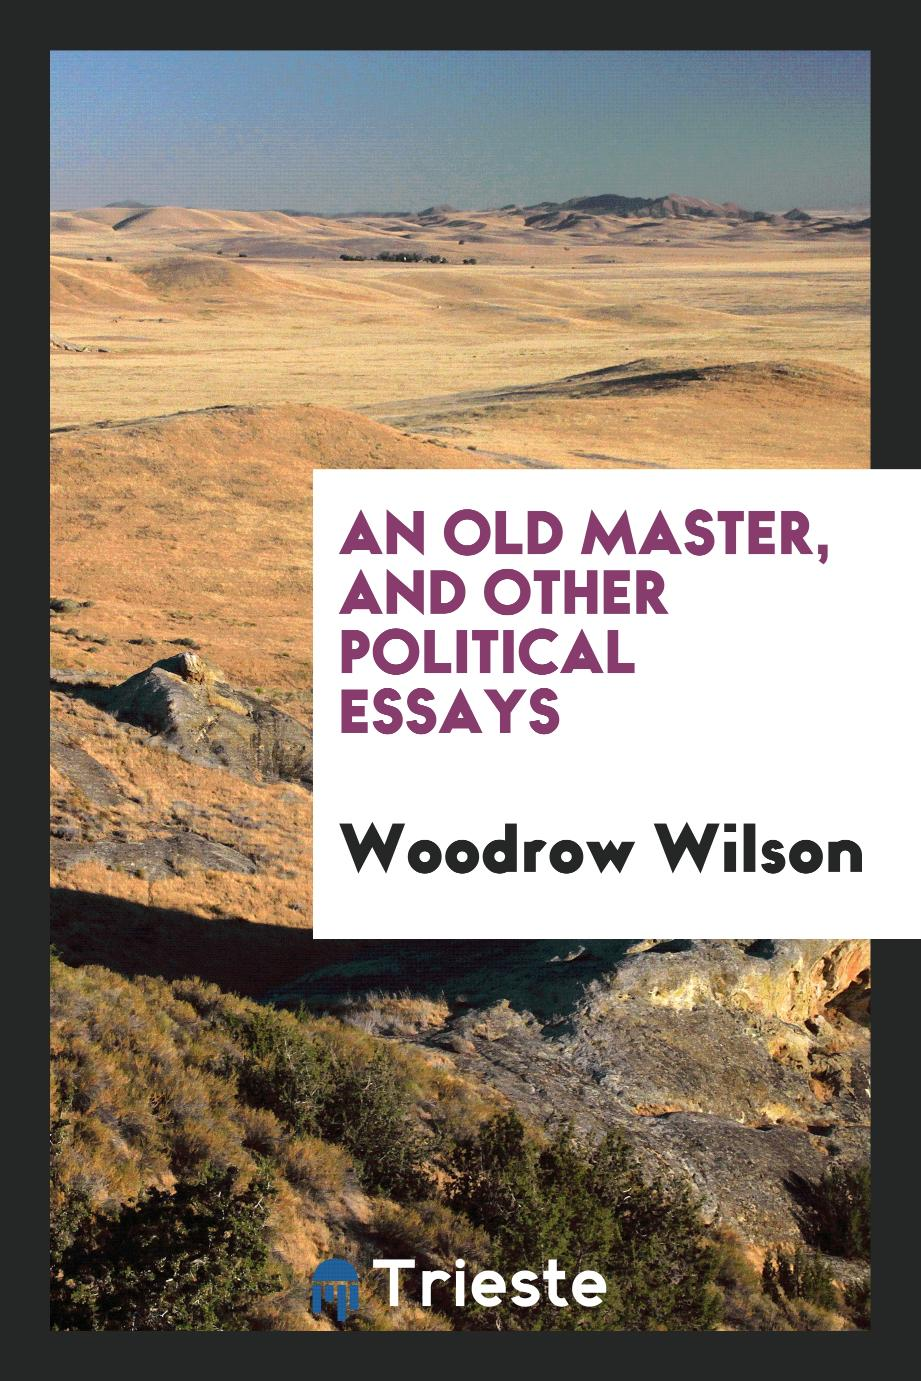 An old master, and other political essays